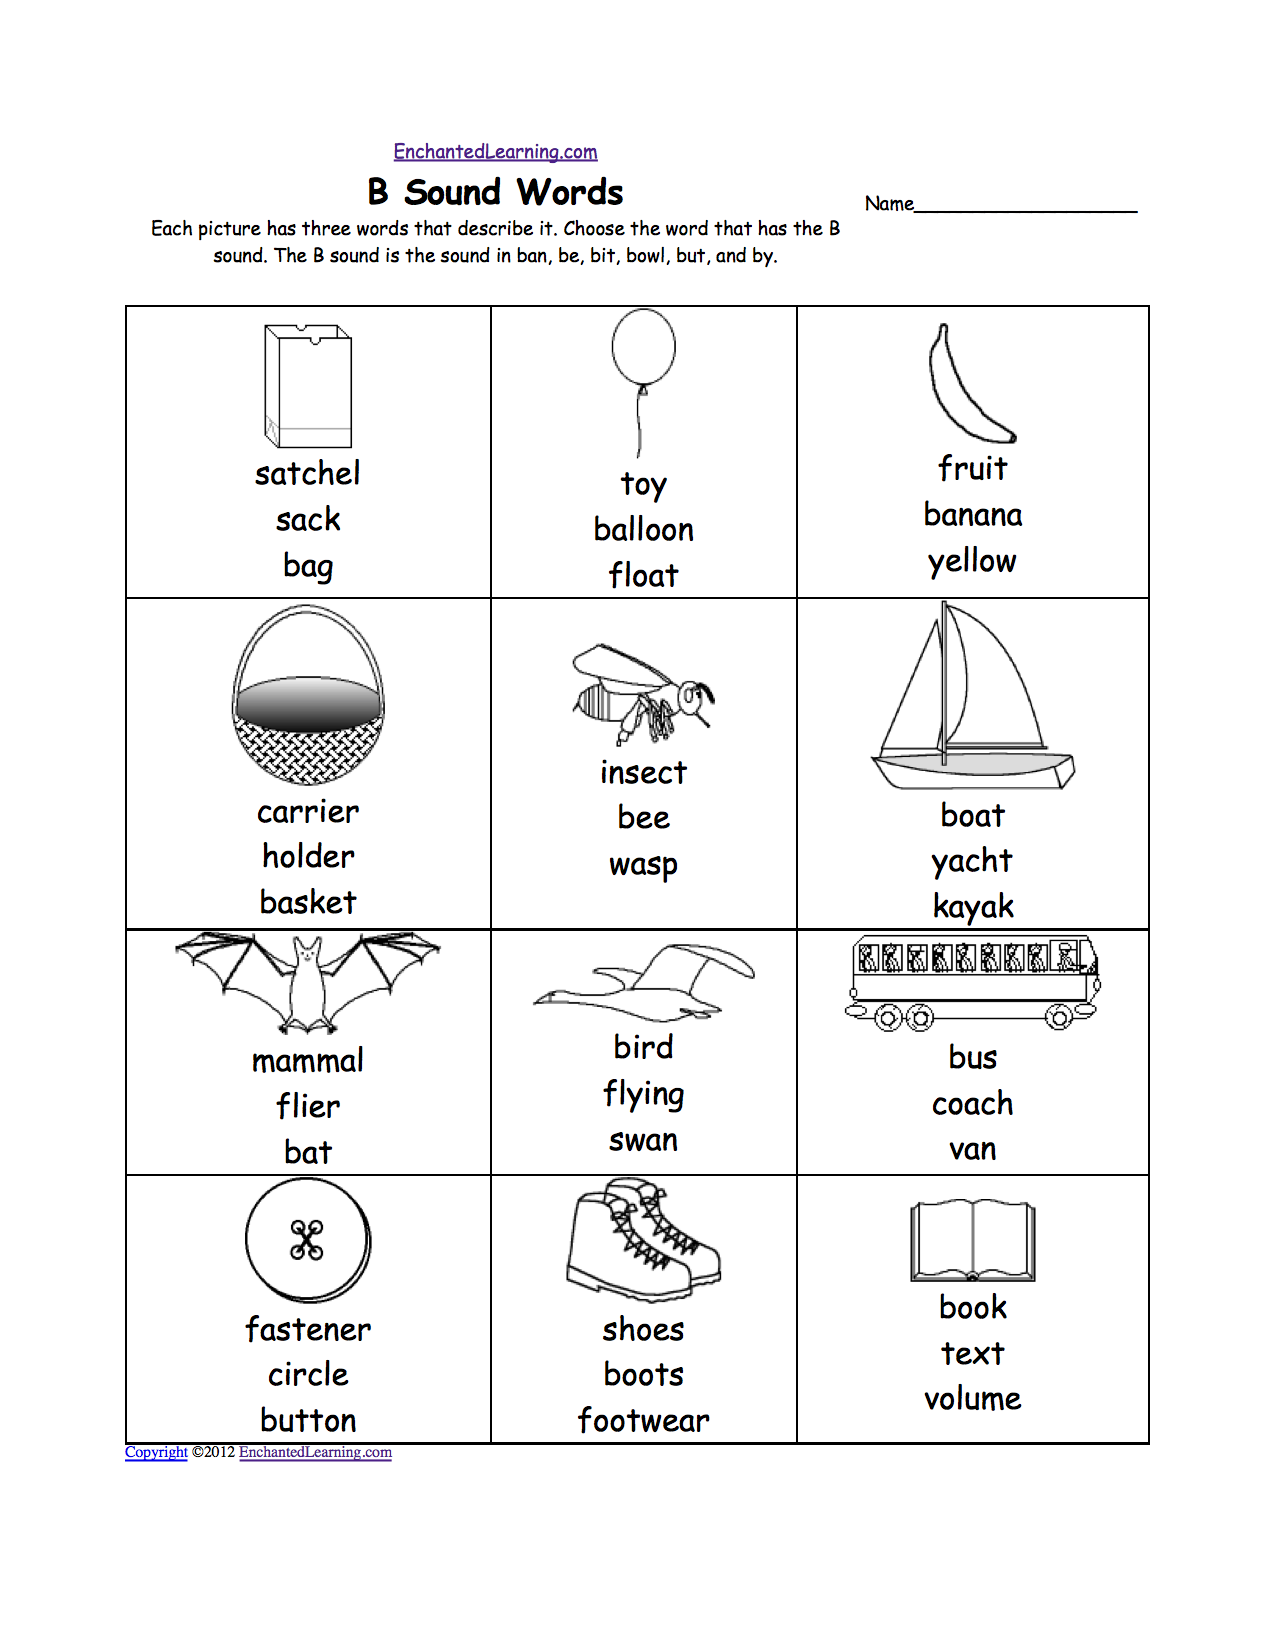 Weirdmailus  Picturesque Phonics Worksheets Multiple Choice Worksheets To Print  With Outstanding Quotbquot Sound Phonics Worksheet Multiple Choice Each Picture Has Three Words That Describe It Choose The Word That Has A Quotbquot Sound The Quotbquot Sound Is The Sound  With Appealing Celestial Sphere Worksheet Also Free Silent E Worksheets In Addition Rhyming Worksheets For Kindergarten Cut And Paste And Practice Abc Worksheets As Well As Square And Cube Root Worksheets Additionally Add And Subtract Mixed Numbers Worksheets From Enchantedlearningcom With Weirdmailus  Outstanding Phonics Worksheets Multiple Choice Worksheets To Print  With Appealing Quotbquot Sound Phonics Worksheet Multiple Choice Each Picture Has Three Words That Describe It Choose The Word That Has A Quotbquot Sound The Quotbquot Sound Is The Sound  And Picturesque Celestial Sphere Worksheet Also Free Silent E Worksheets In Addition Rhyming Worksheets For Kindergarten Cut And Paste From Enchantedlearningcom